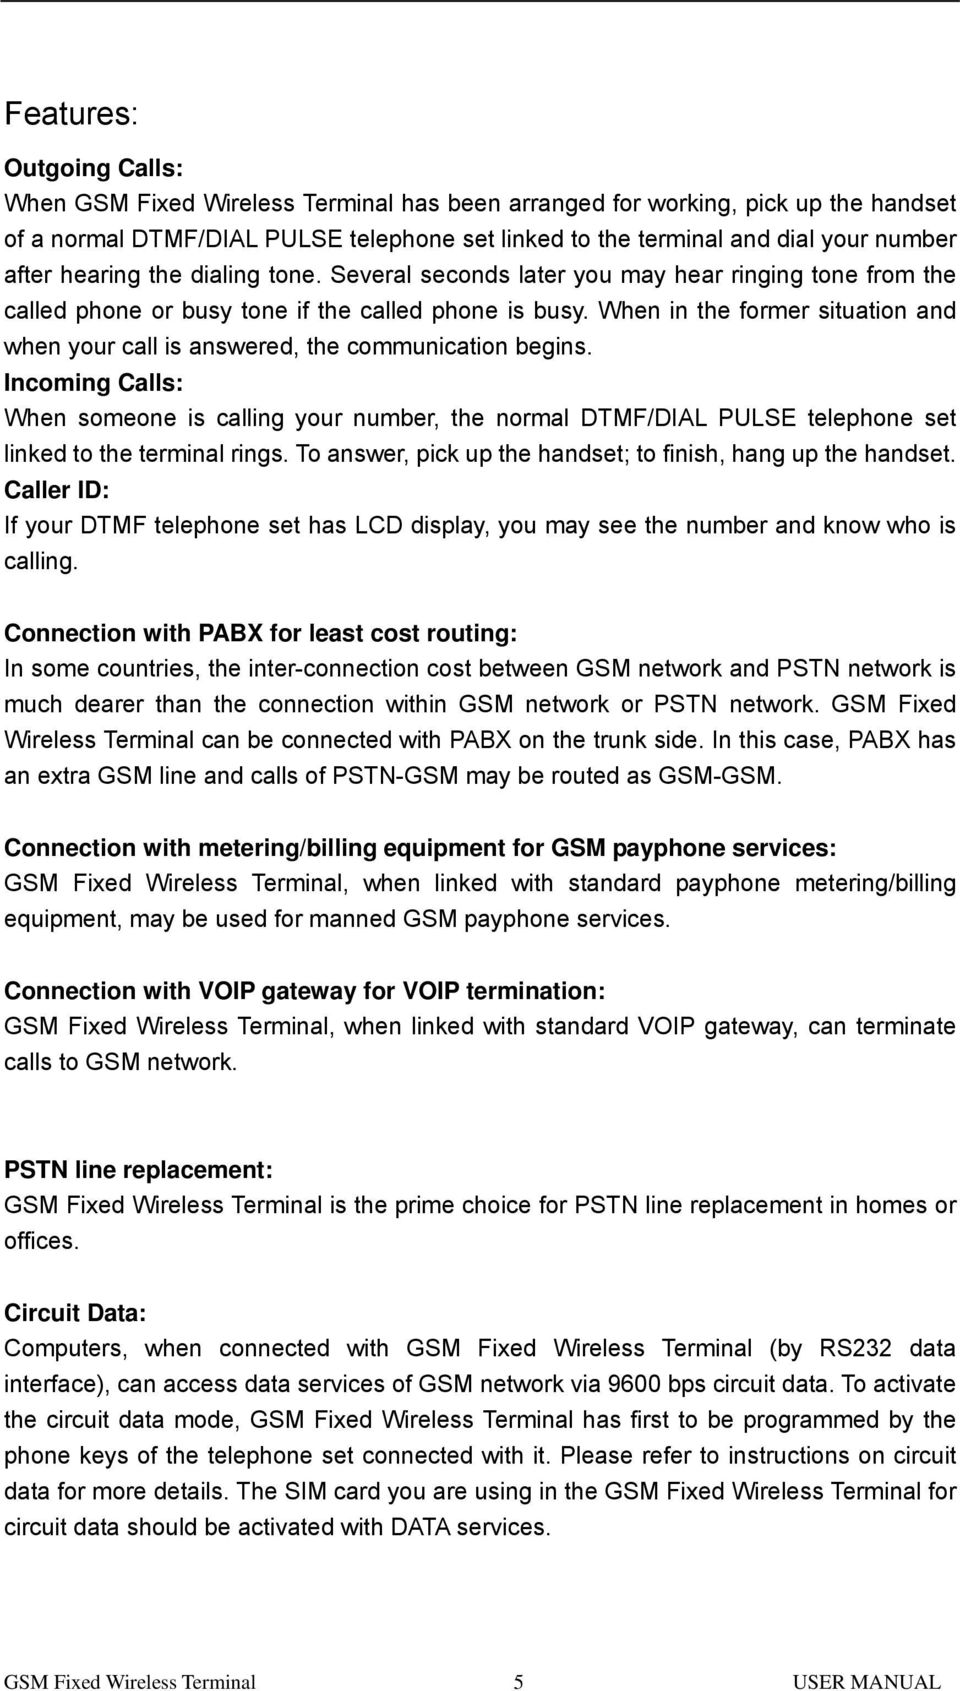 Gsm Fixed Wireless Terminal Pdf Gps Module Schematics Rev11 When In The Former Situation And Your Call Is Answered Communication Begins